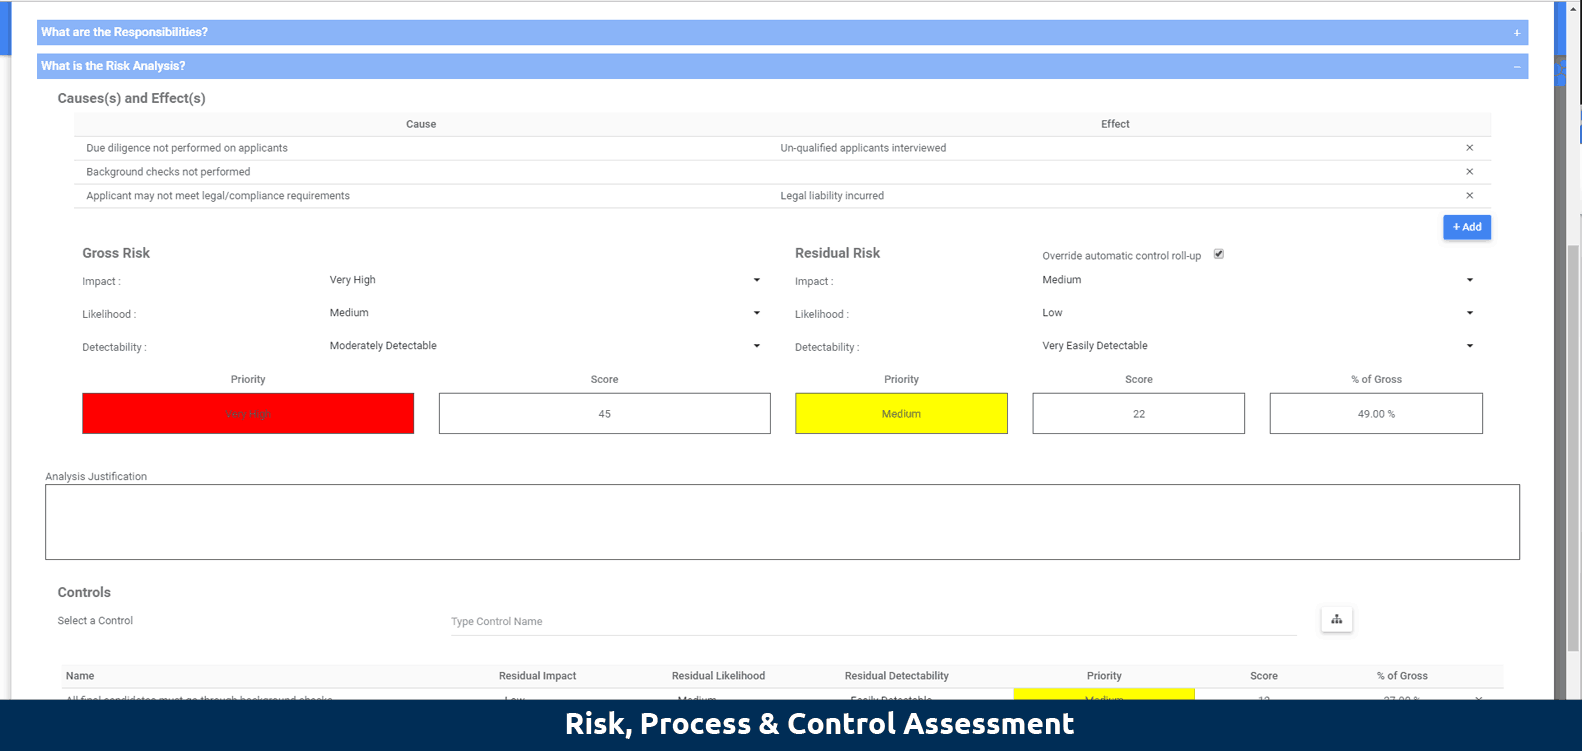 Risk, process & control assessment